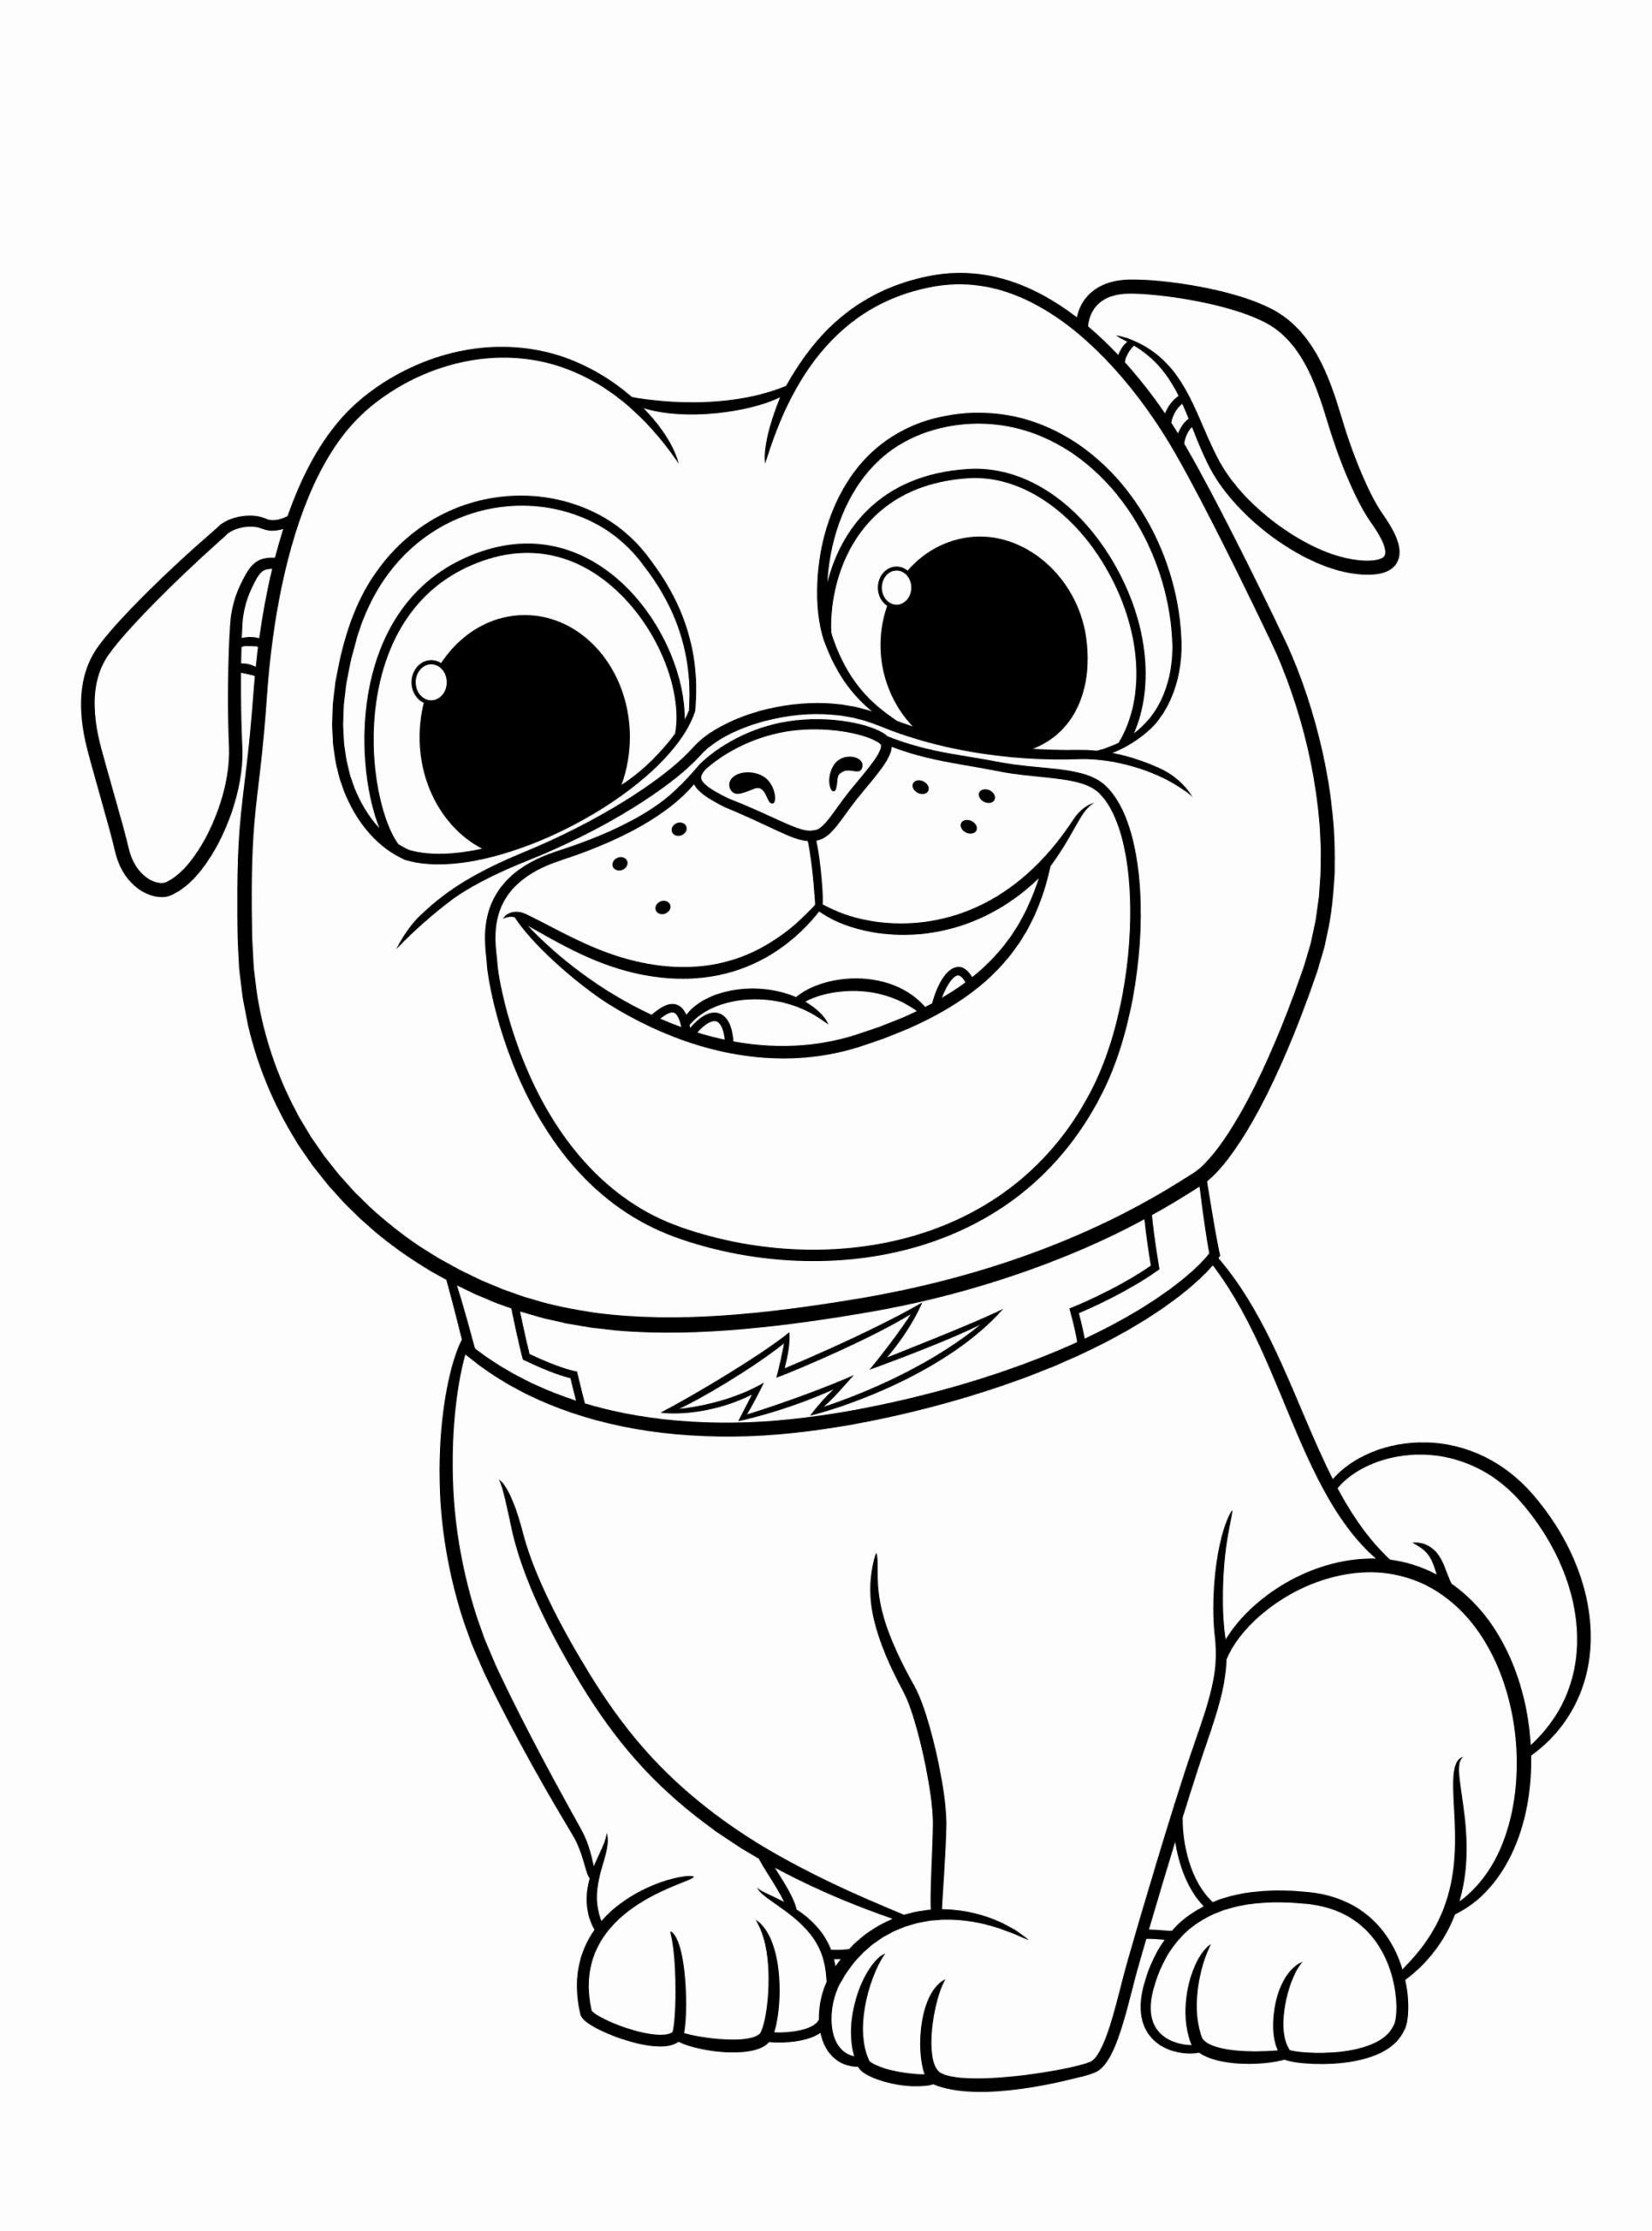 Puppy Dog Pals Coloring Page Beautiful Pin Oleh